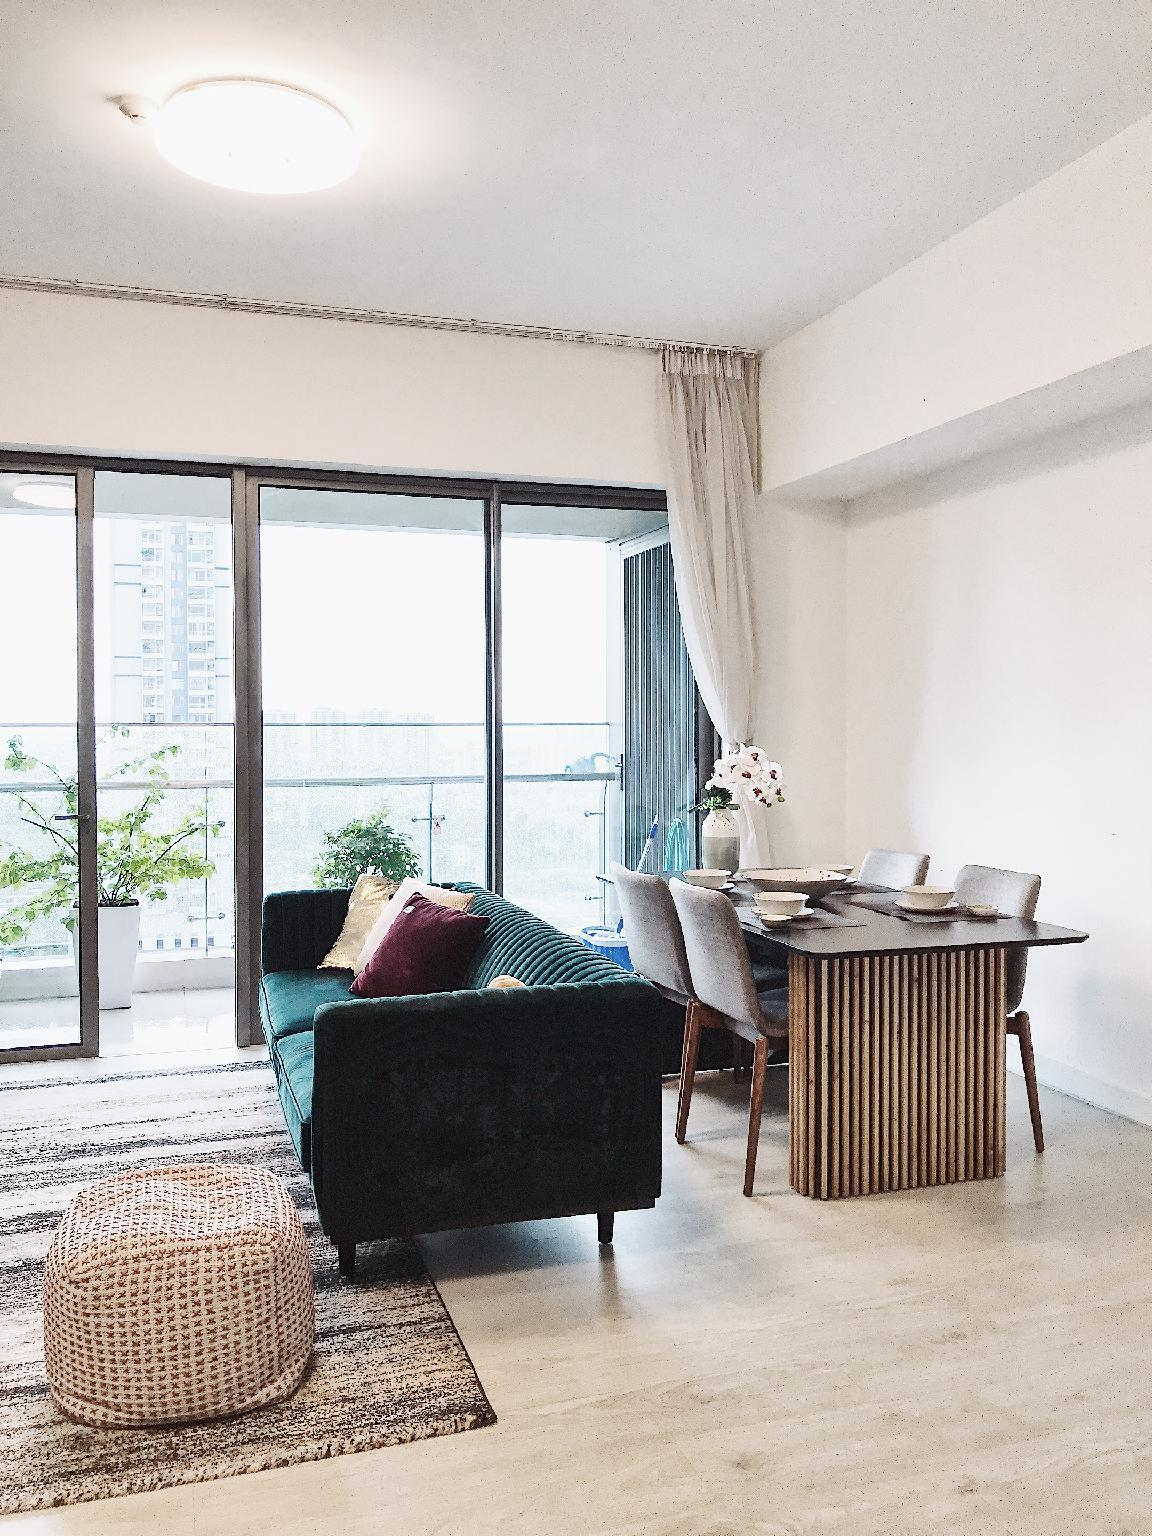 Stunning 1 Bedroom Flat In Heart Of District 2